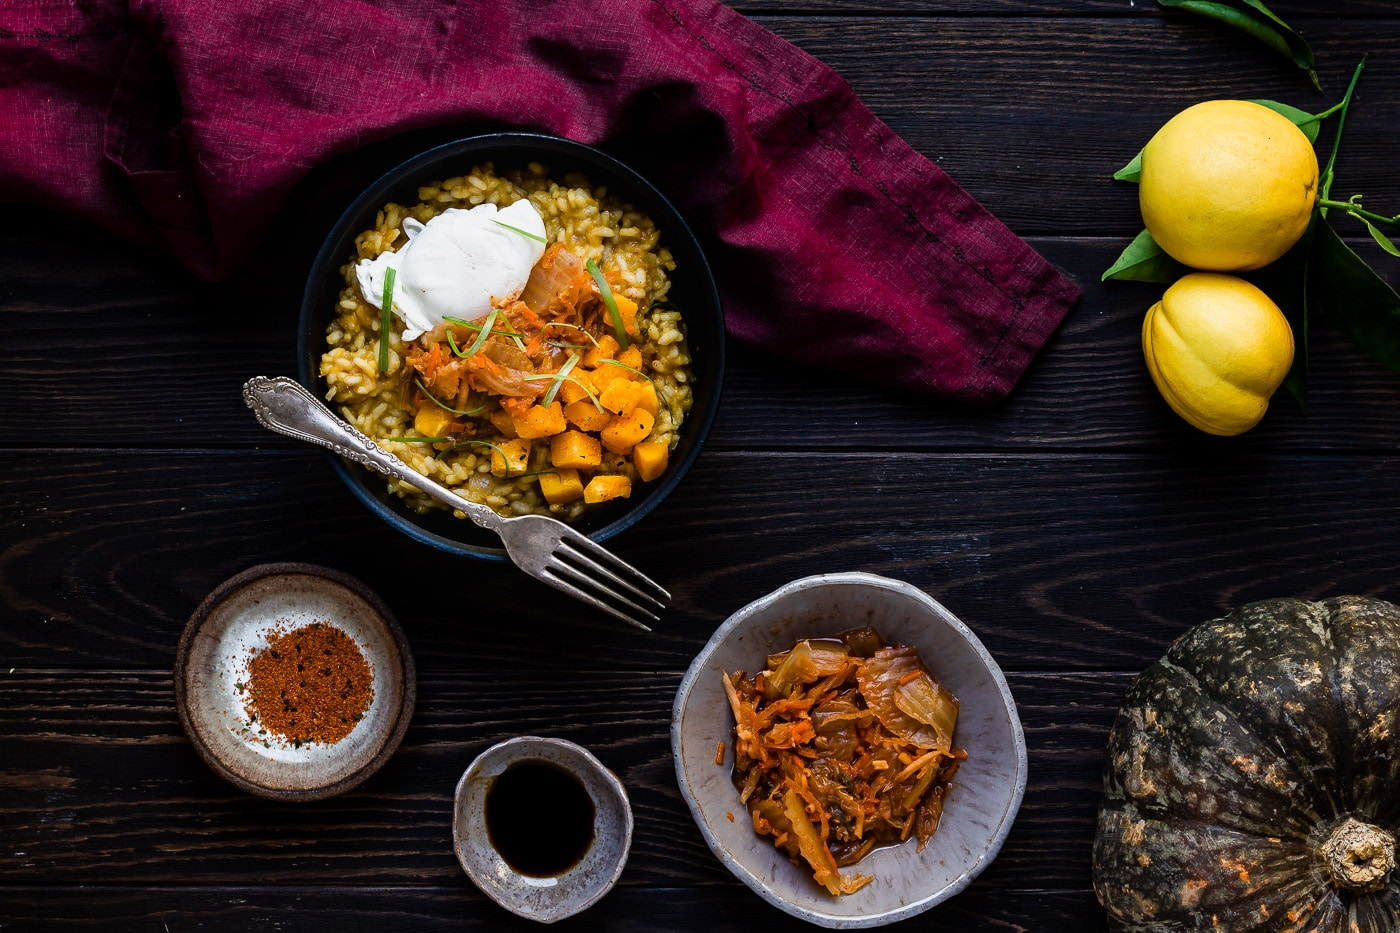 Kabocha Squash Risotto with egg and toppings